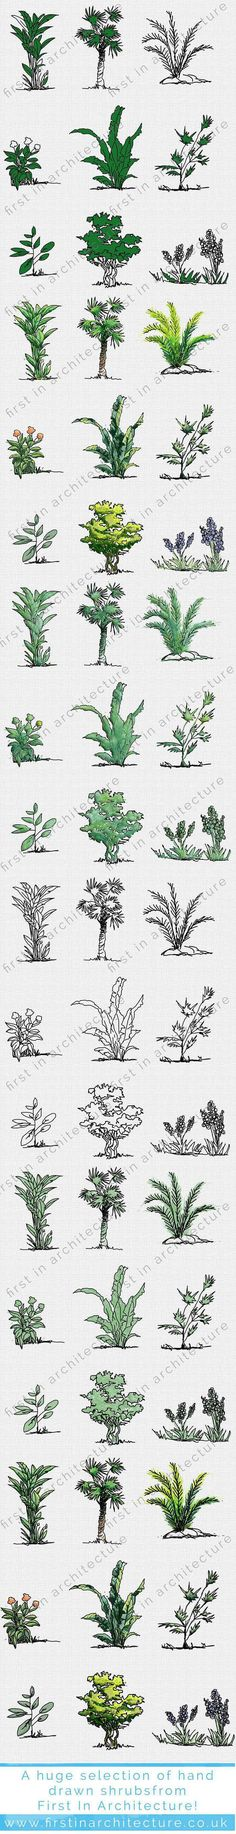 fia-bushes_plants-complete-2-1